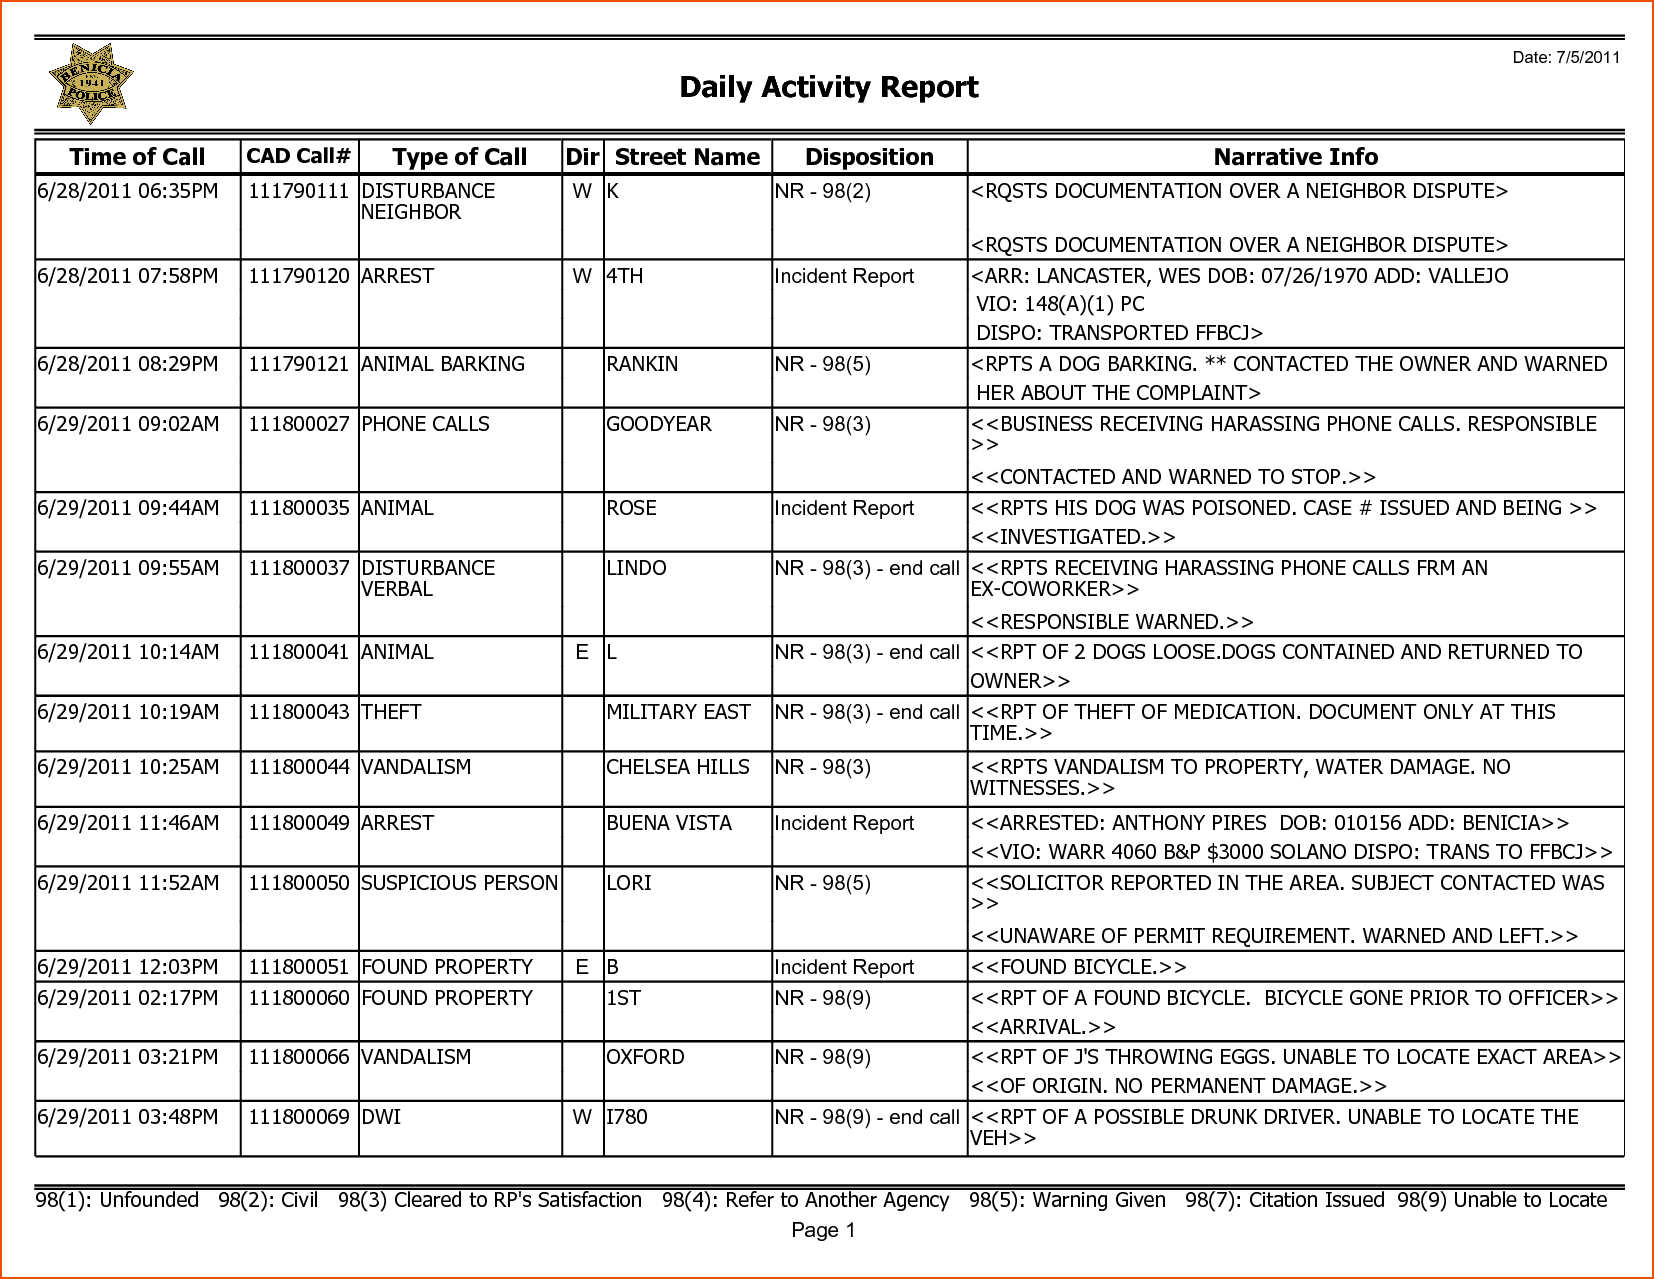 Weekly Activity Report Template  Bookletemplate Throughout Daily Activity Report Template